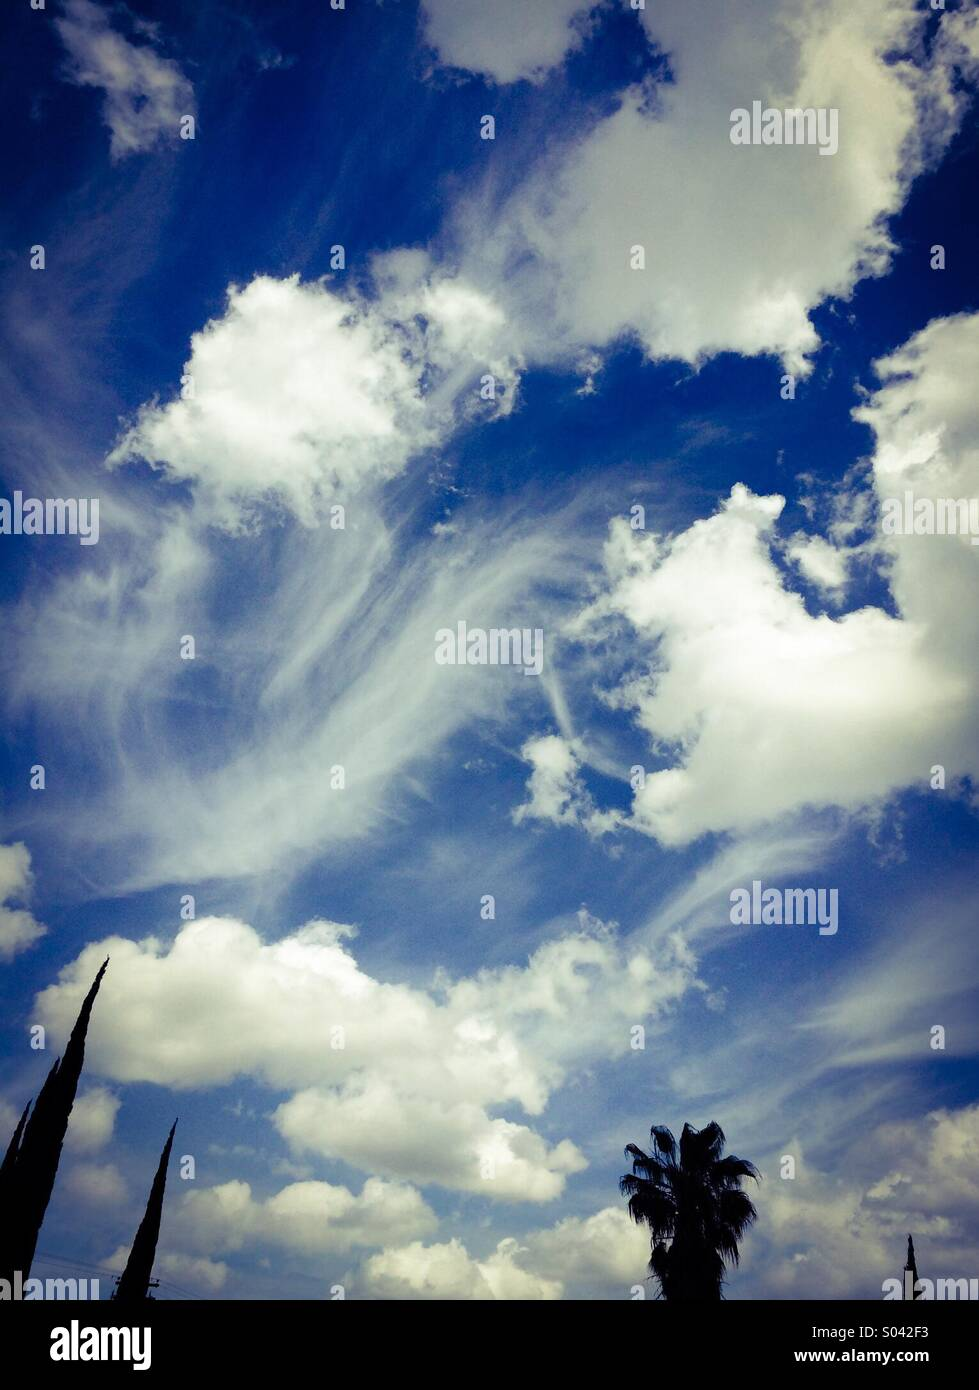 White wispy and cumulus clouds in a blue sky - Stock Image